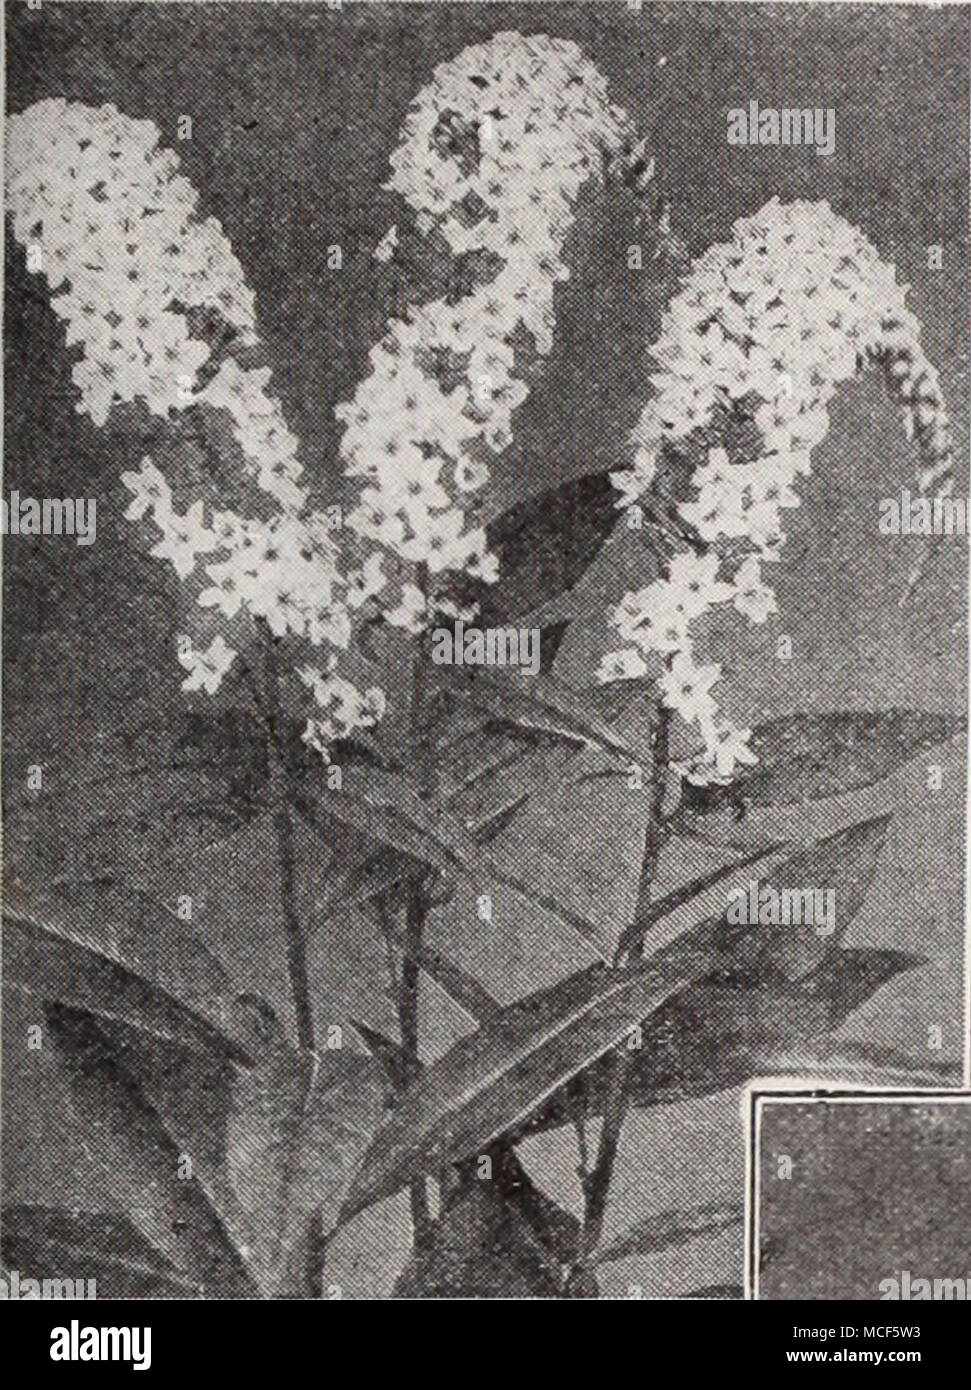 . Lysimachia Clethroides Lychnis (Campion, Lamp Flower, etc.) Of the easiest culture, thriving in any soil, and this, in addition to their brightness has brought them into high favor with lovers of hardy plants. Chalcedonica (Jerusalem Cross). A most desirable plant, heads of brilliant orange-scarlet in June and July; grows 2 to 3 feet high. — Alba. A white-flowered form of above. Haageana. Brilliant orange- scarlet flowers in May and June; 12 inches. Viscaria Splendens. Forms a dense tuft of evergreen foliage, and in June sends up spikes of handsome, double, deep red, fragrant flowers; 1 foot Stock Photo